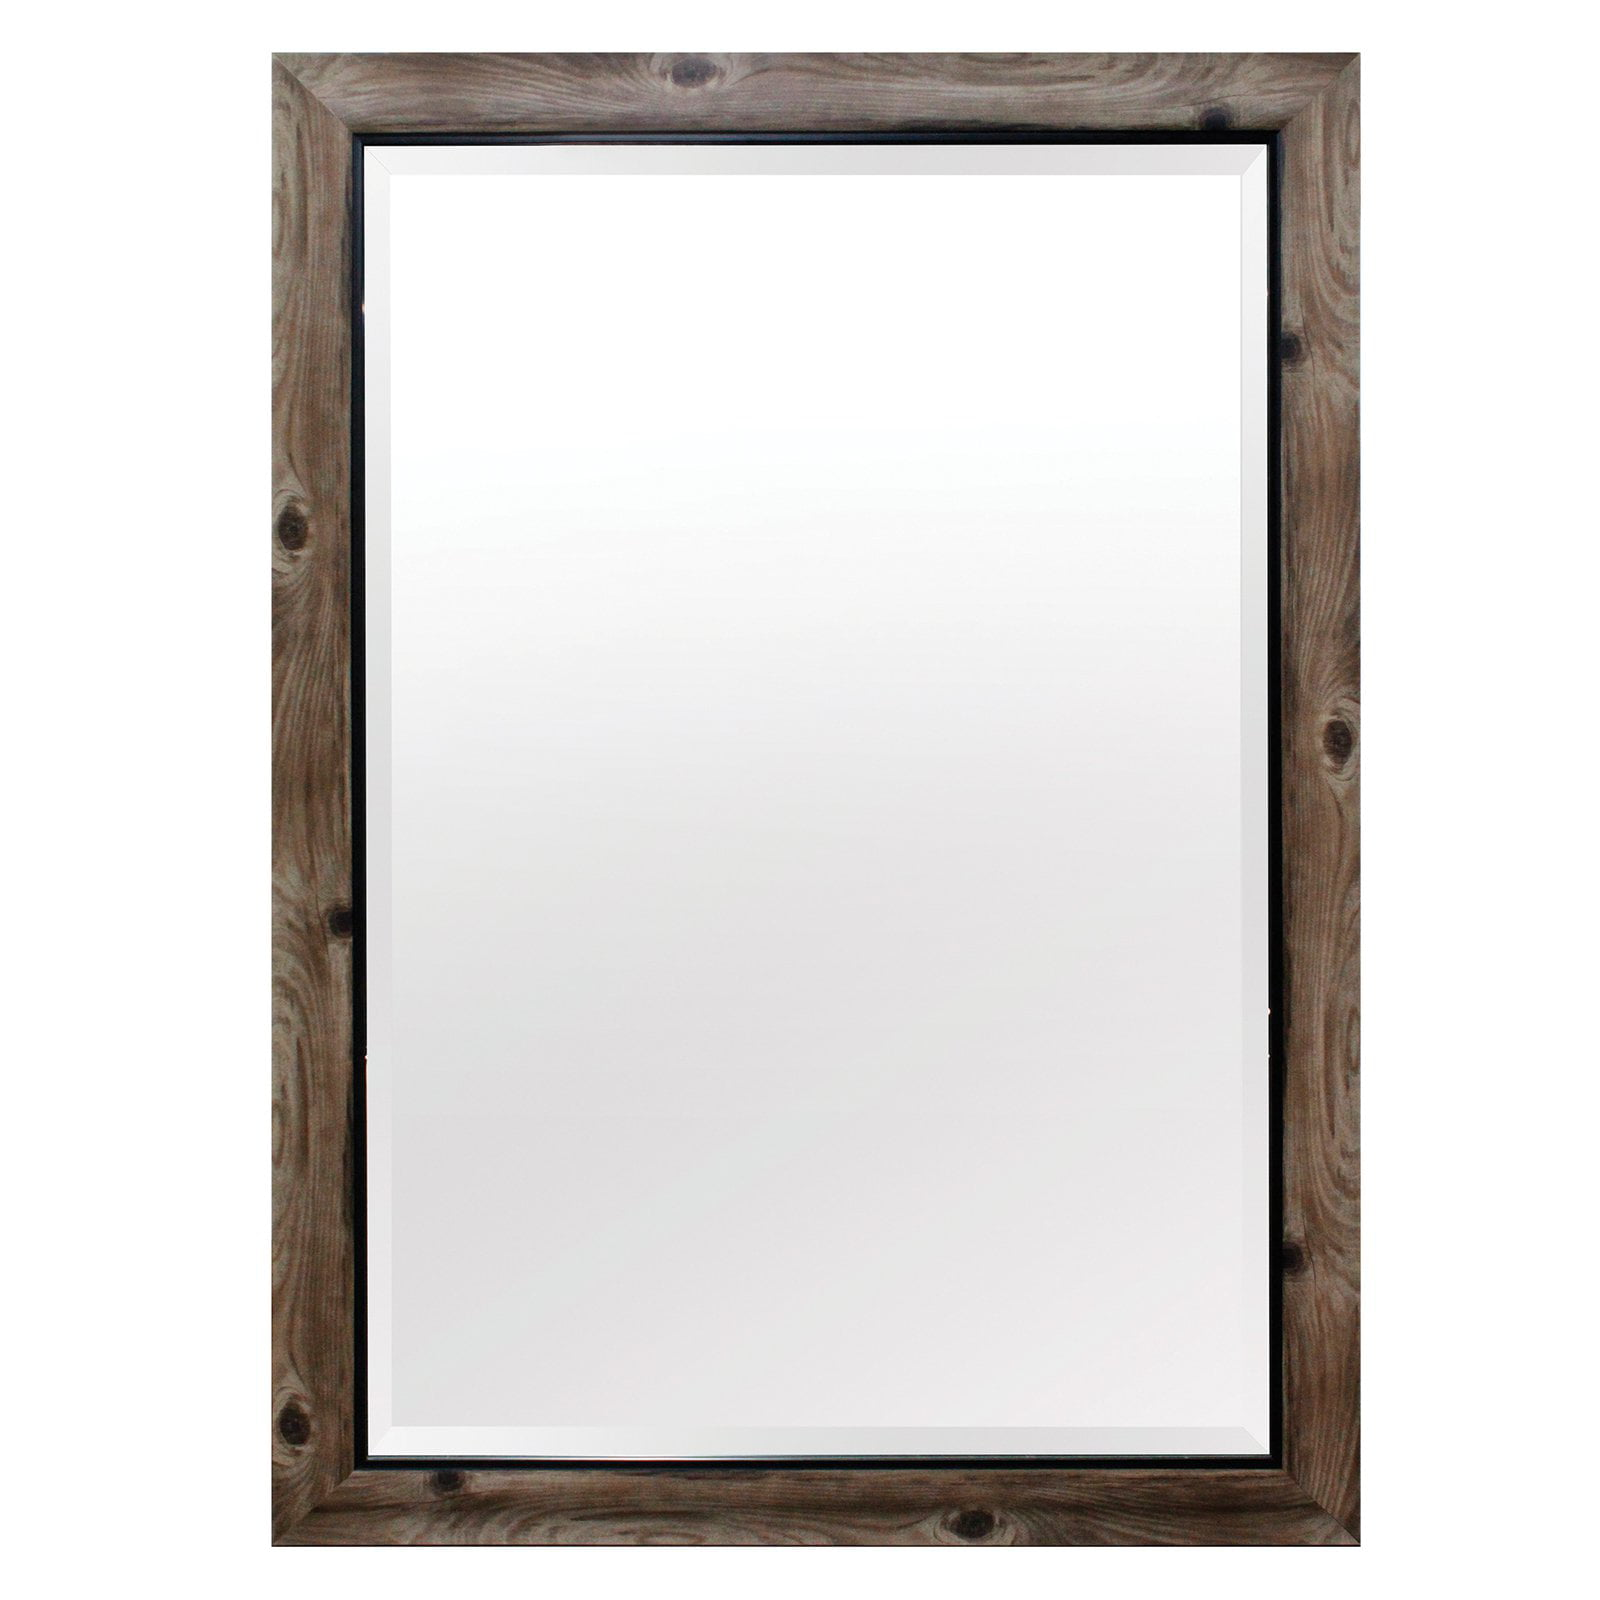 Yosemite Home Gray Wood Frame with Black Trim Wall Mirror by Yosemite